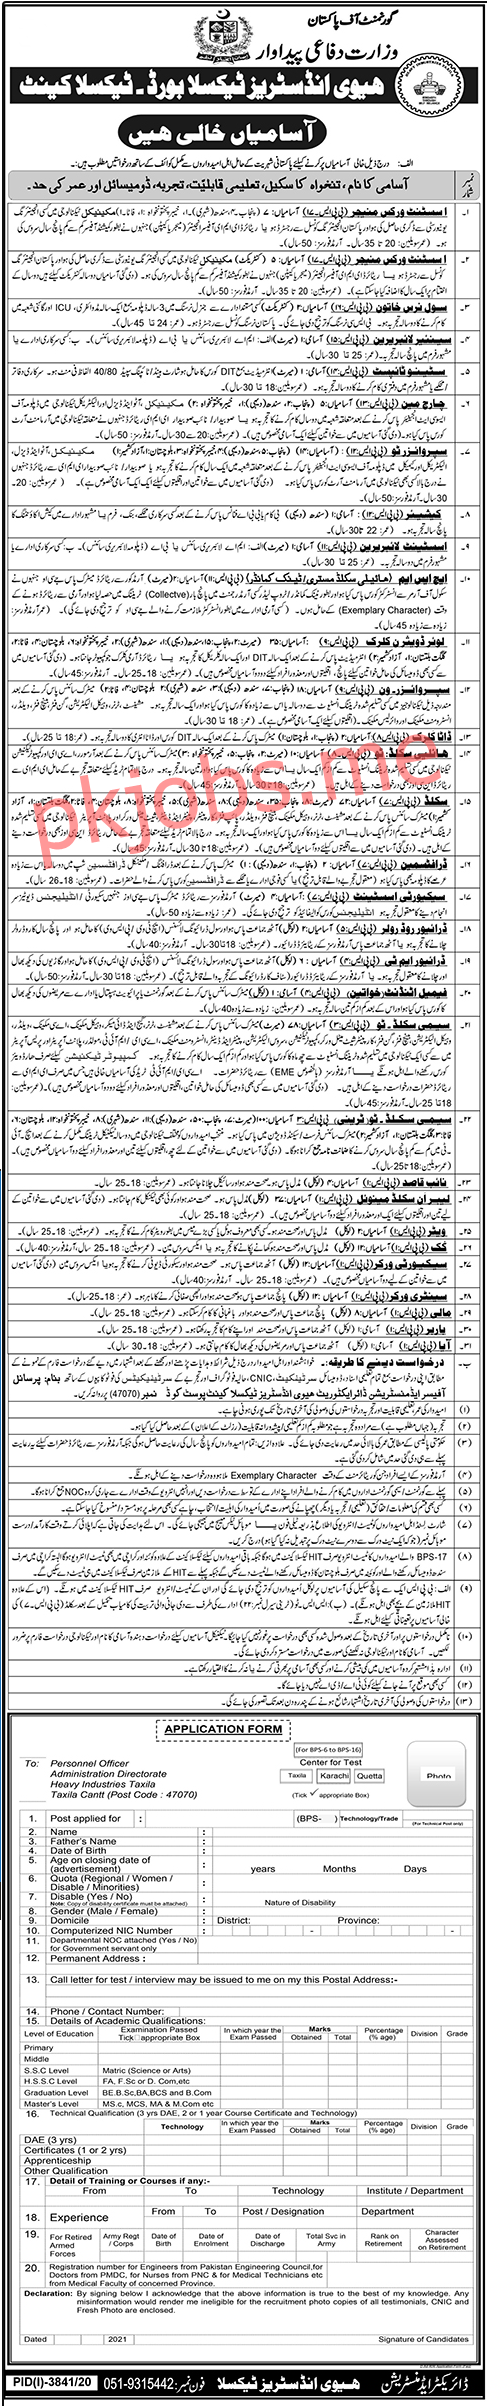 Latest Heavy Industries Taxila Board Management Posts 2021